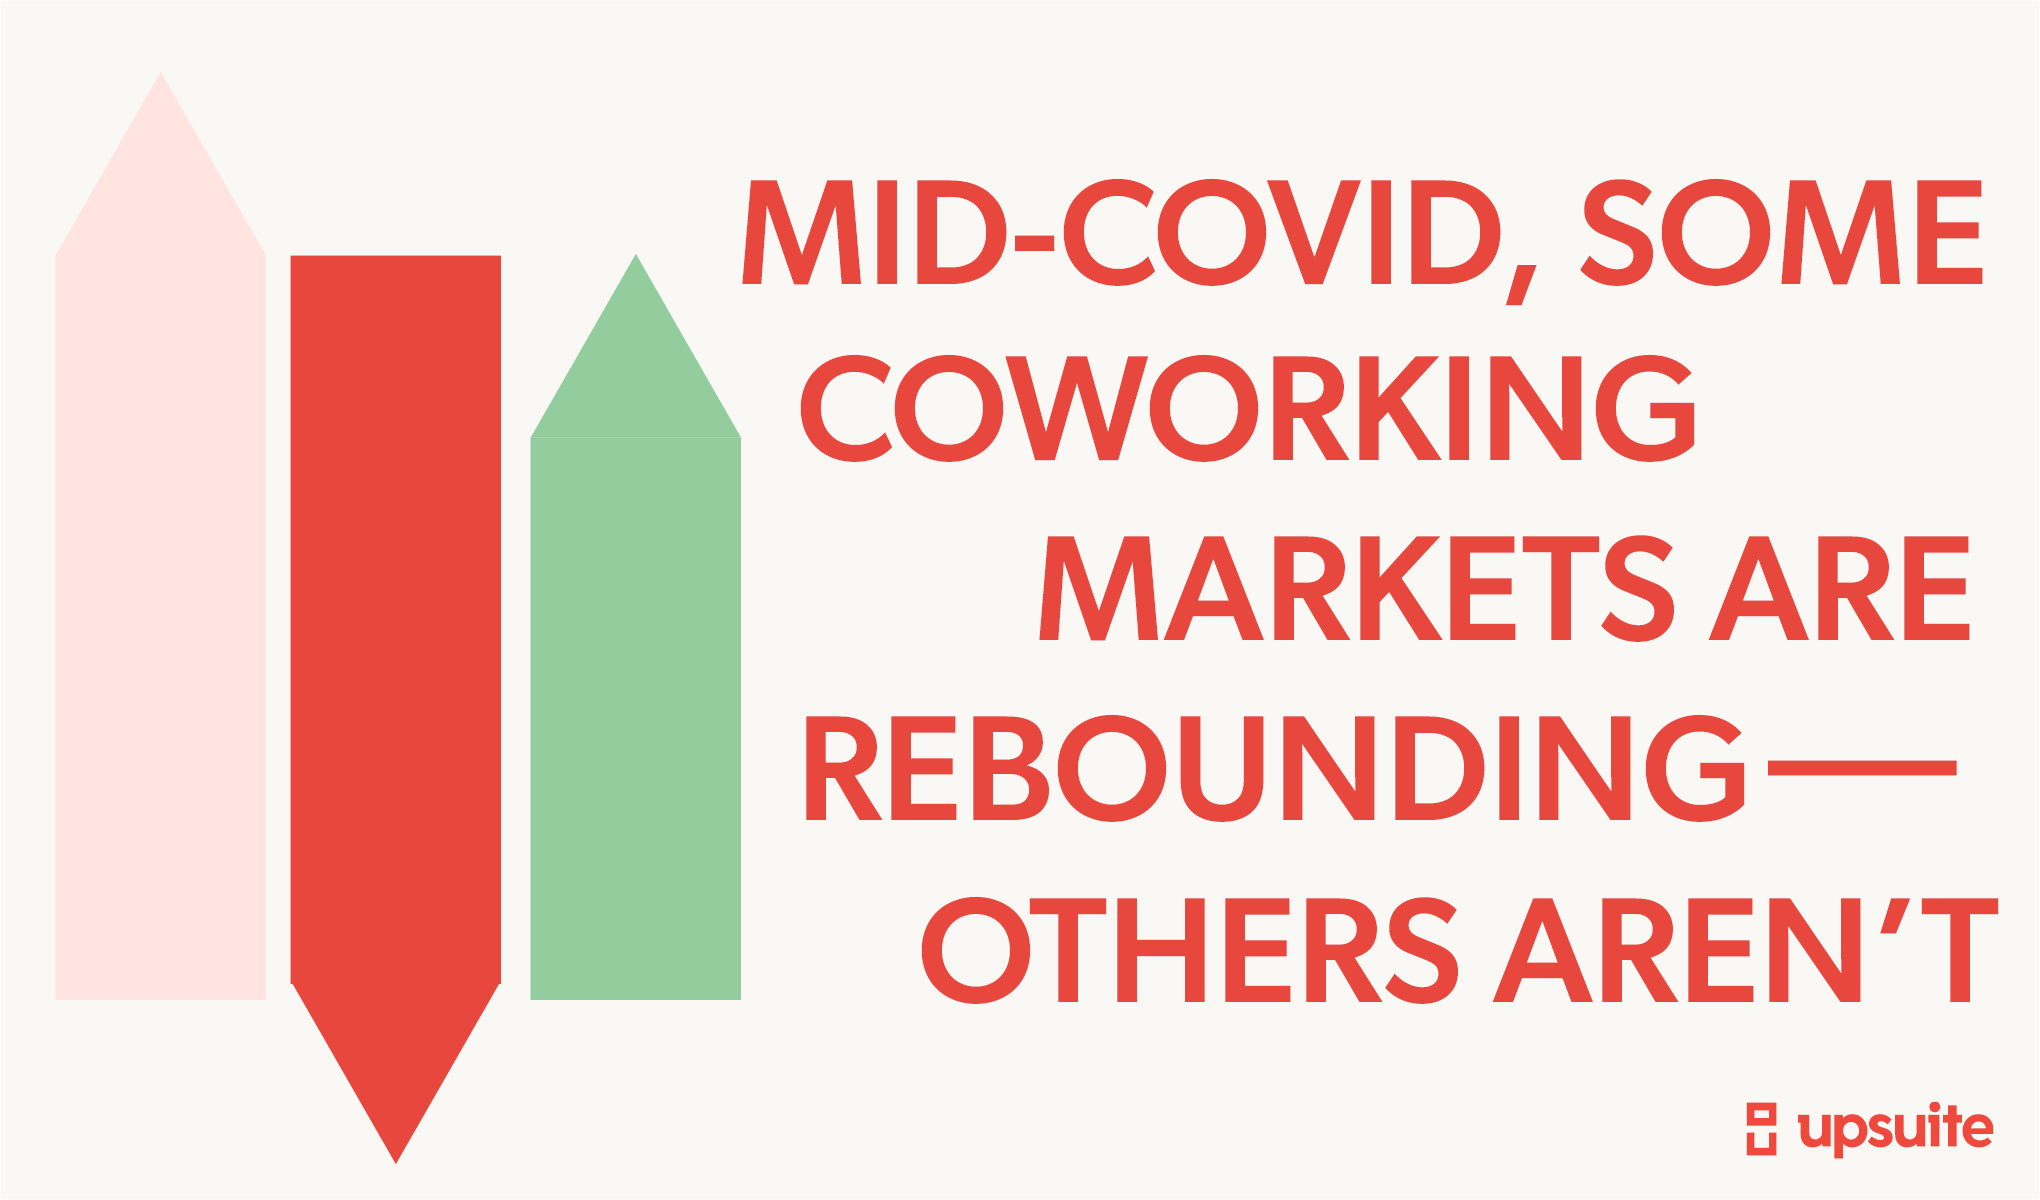 Some Coworking Markets Are Rebounding Mid-Pandemic, Others Aren't